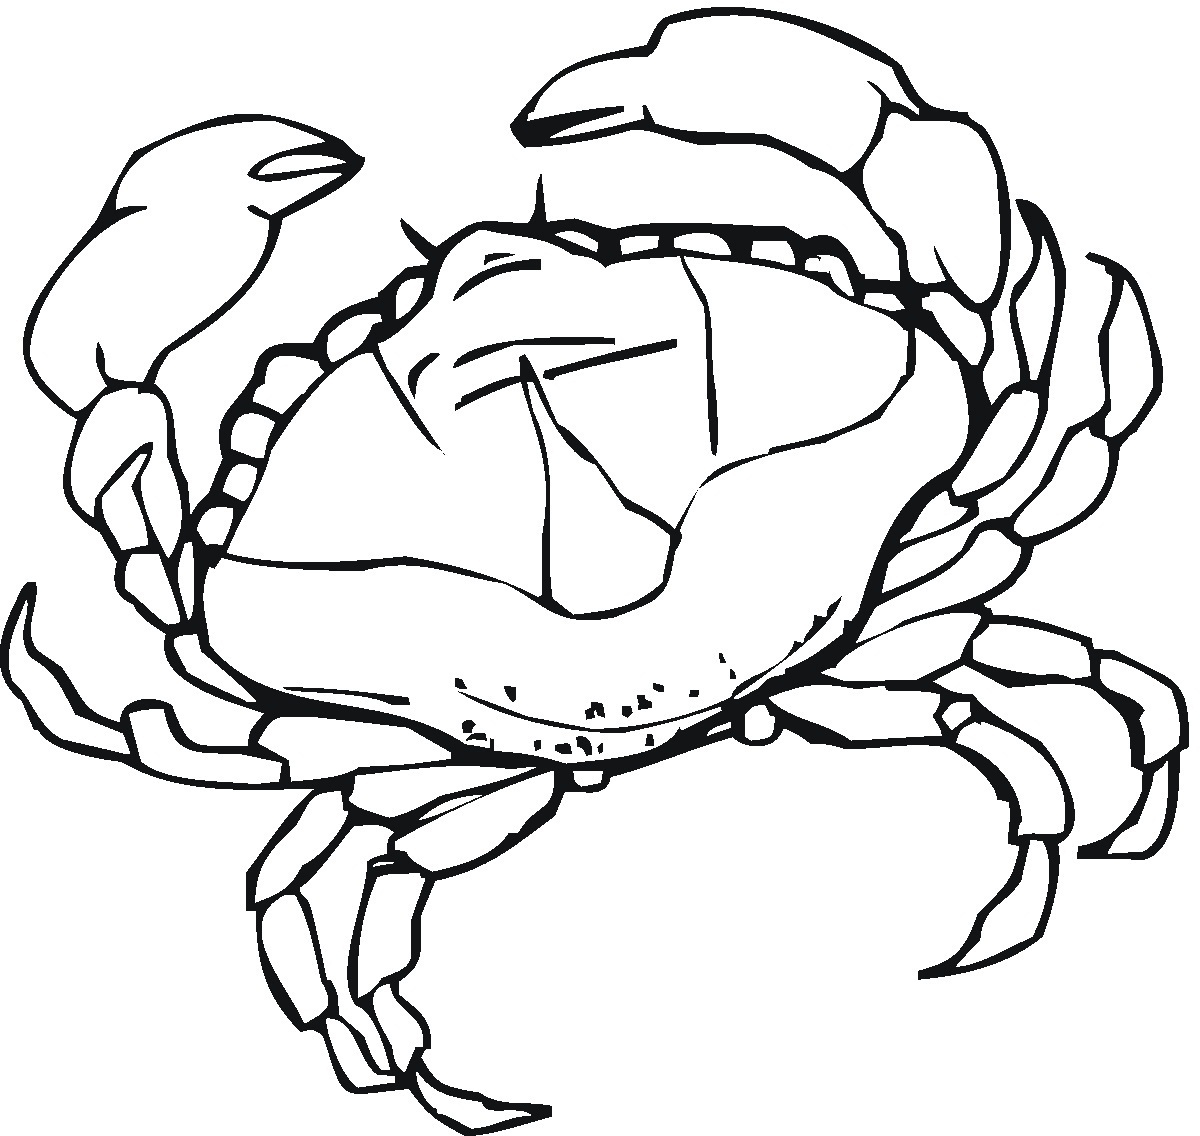 Free coloring pages of crab